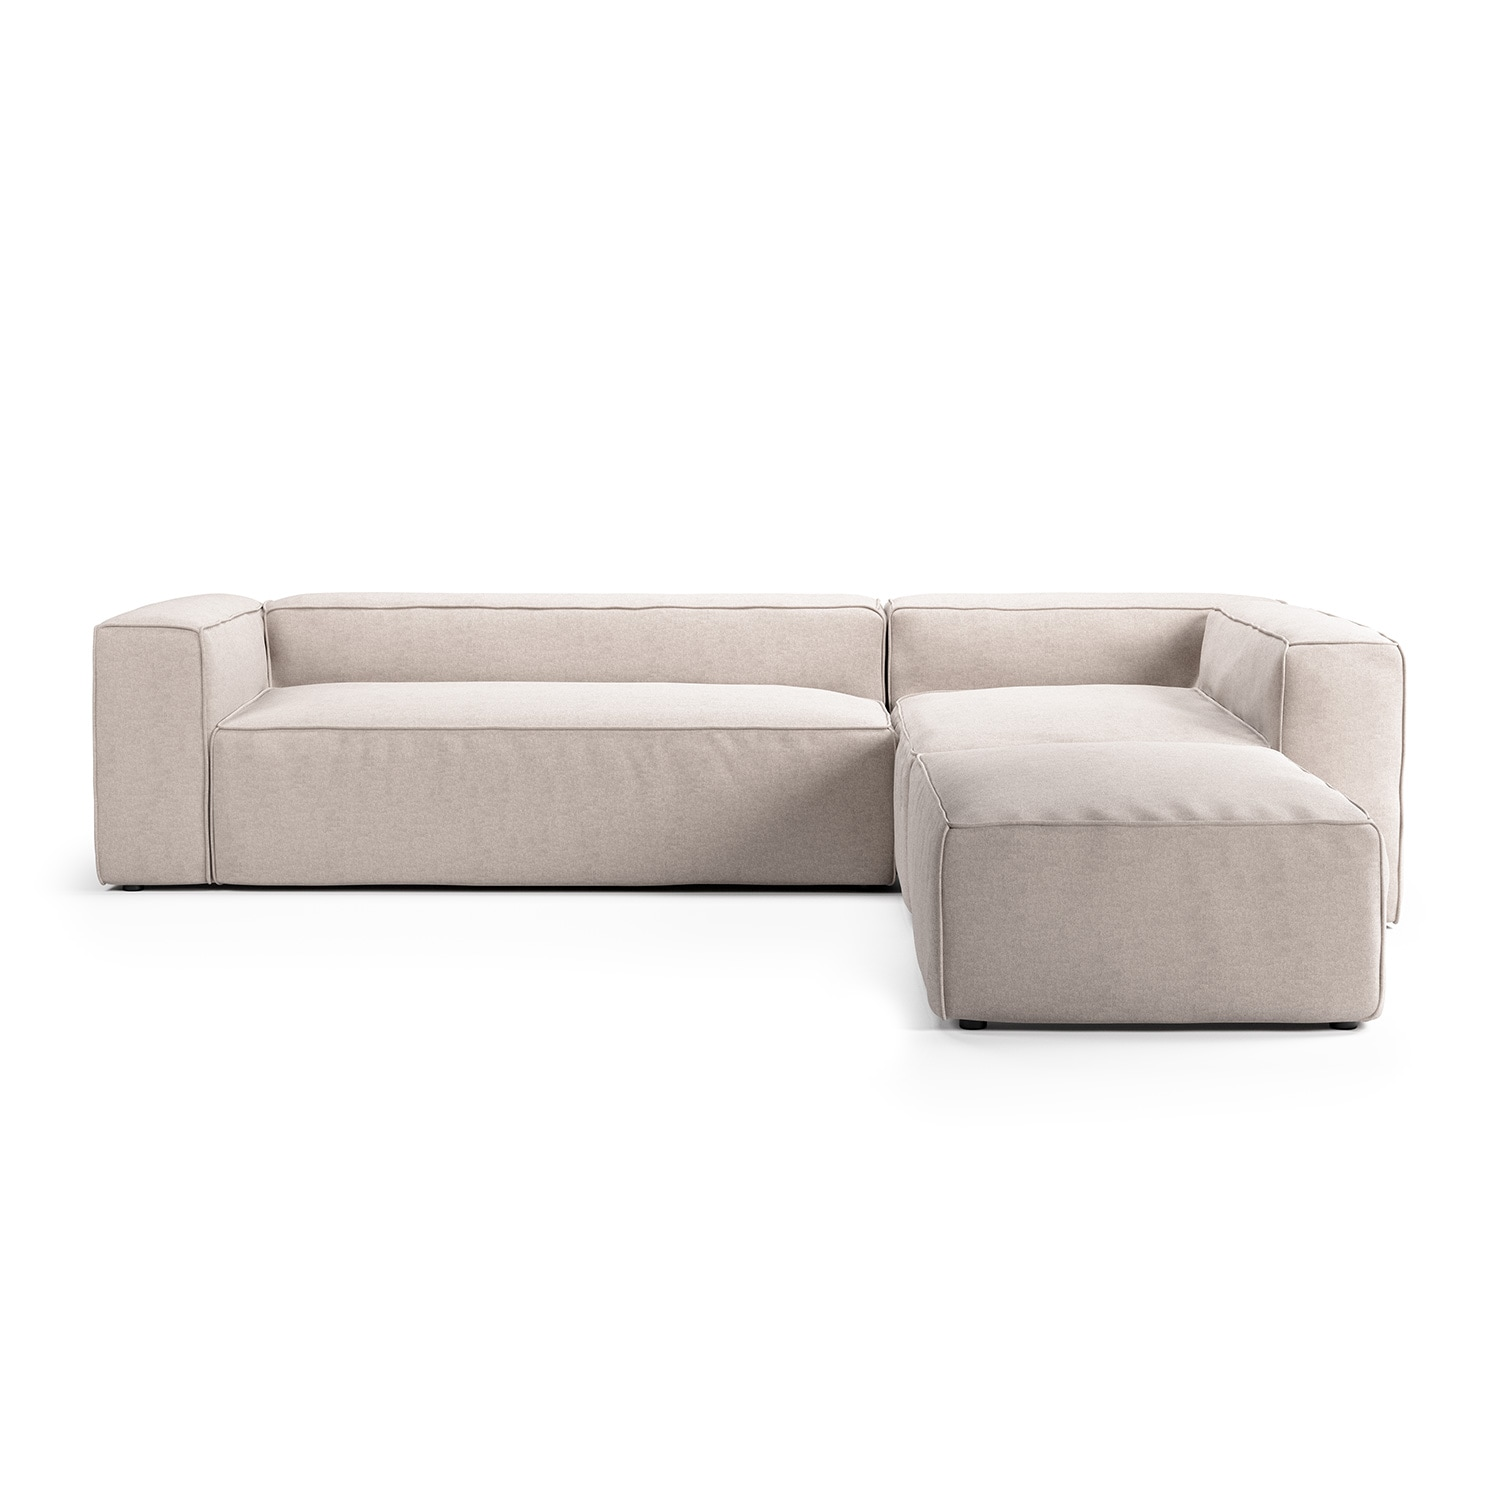 Grand 4 Seat Divan Sofa Open End Right Decotique Royaldesign